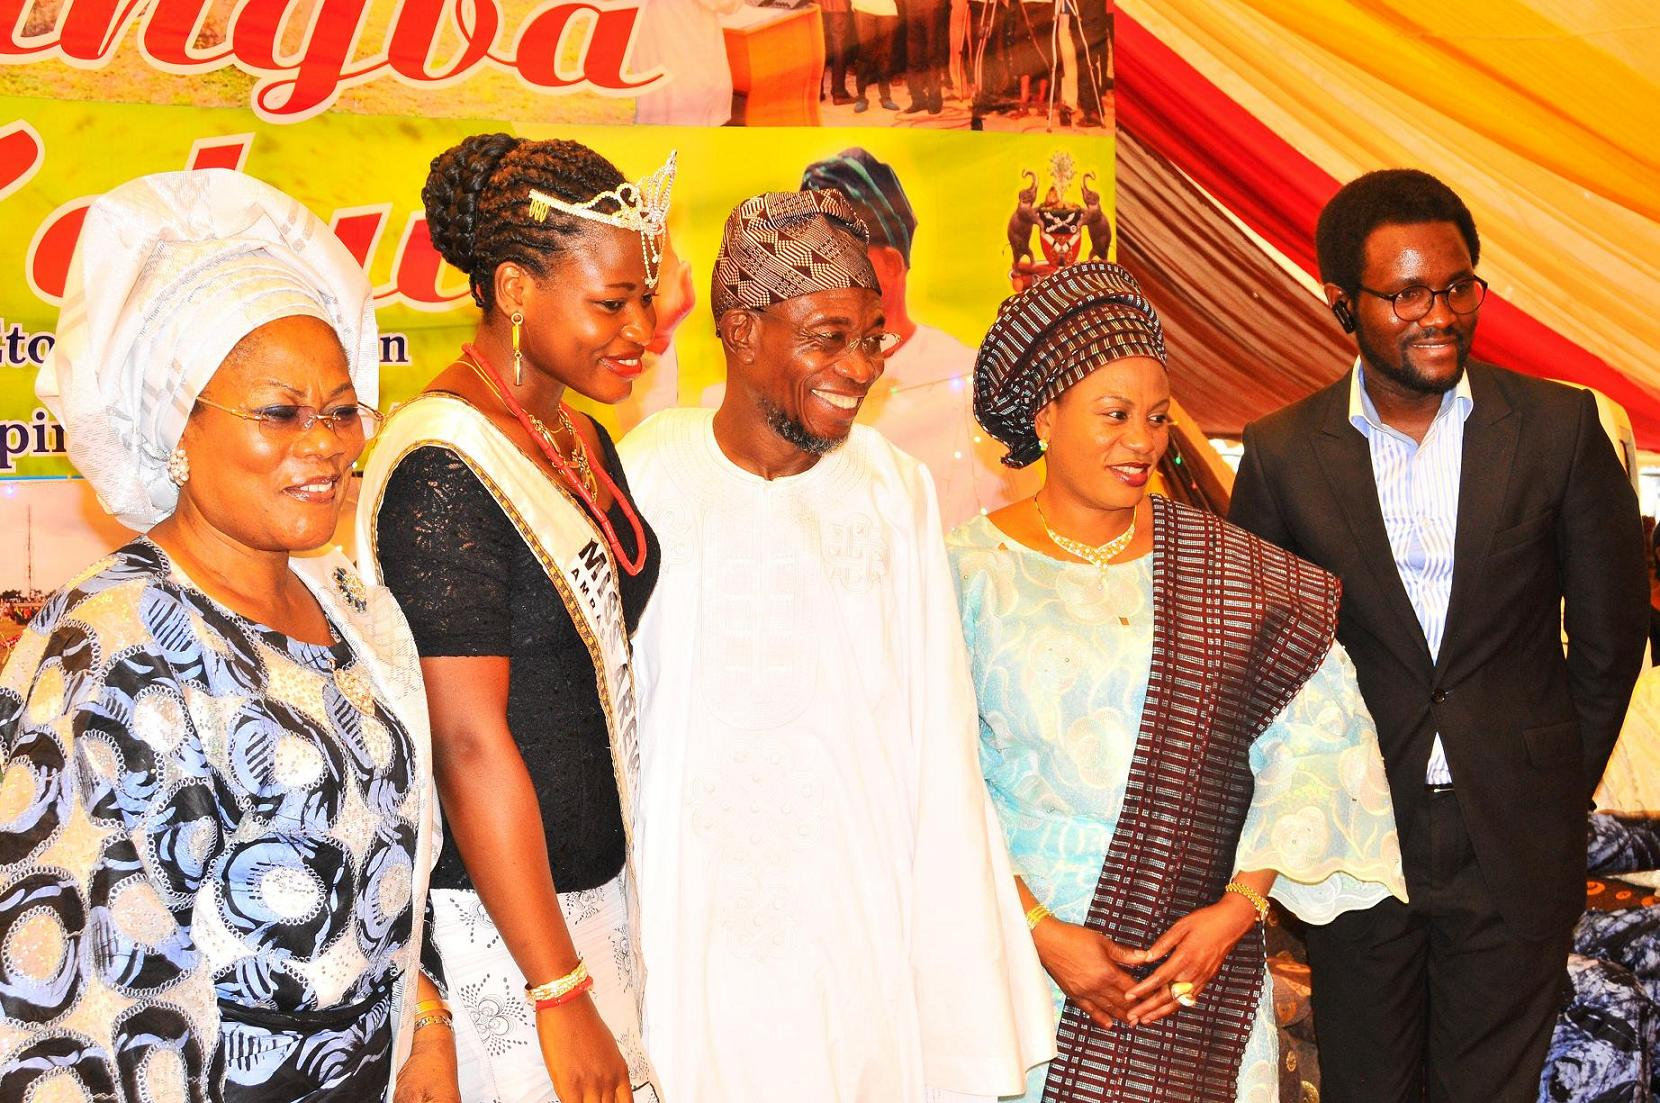 """From left, Deputy Governor State of Osun, Mrs Titi Laoye-Tomori; Winner Arewa Osun, Miss Adiatu Damilola; Governor, Ogbeni Rauf Aregbesola; his wife, Sherifat and Chief Executive Officer, Miss Arewa Beauty Pageant, Mr Oludare Kolade, after words of support for Aregbesola Second Term in office by people of Ijeshaland,  during the 6th edition of an interactive programme tagged, """"Gban-gba Dekun"""" in Ijesha South Federal Constituency consisting of Ilesa West, Ilesa East, Atakumosa East and Atakumosa West Local Governments at Ilesa High School, Ilesa, State of Osun last week"""